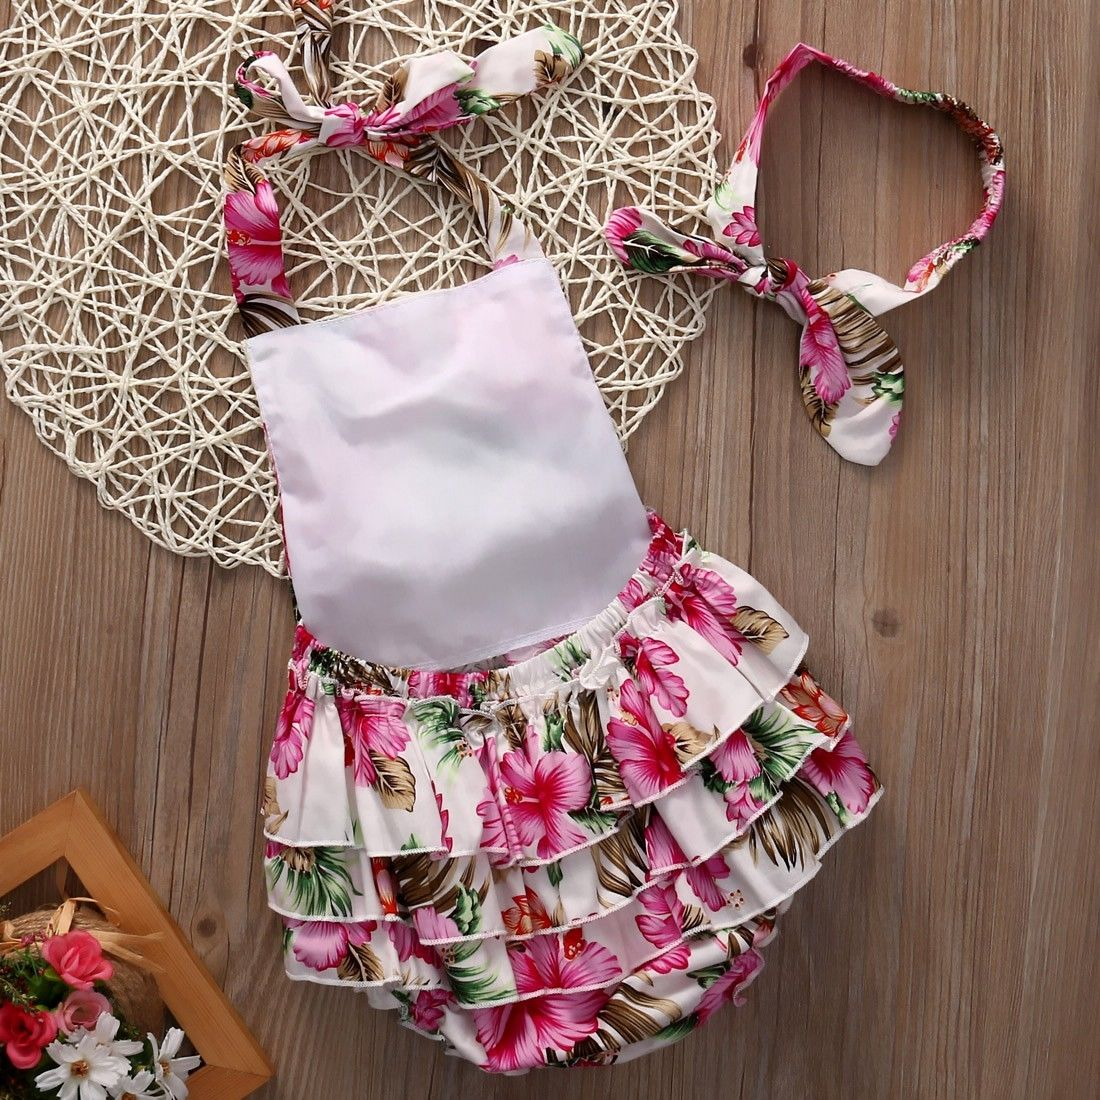 2018 Fashion Adorable Baby Girls Floral Bodysuit Ruffle Dress Jumper Sleeveless Summer Sunsuit Outfits 1PCS